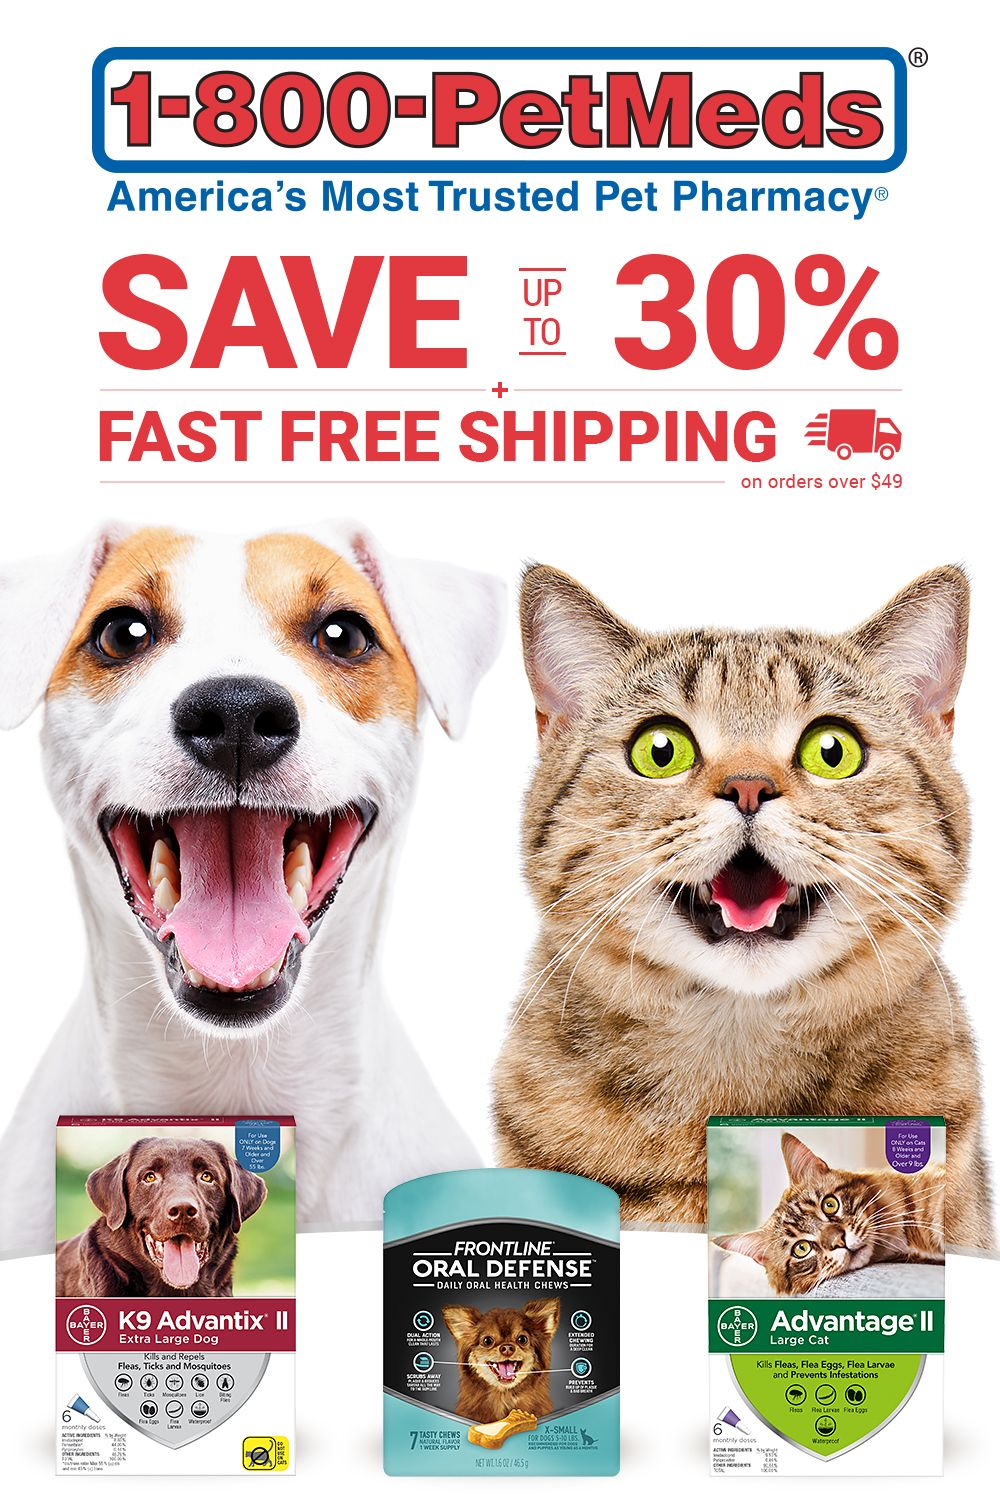 Get The Same Medications As The Vet For Less From Trusted Pet Medication Experts Get A Free Treat With Every Order And Fast Fre Pet Medications Cat Fleas Pets